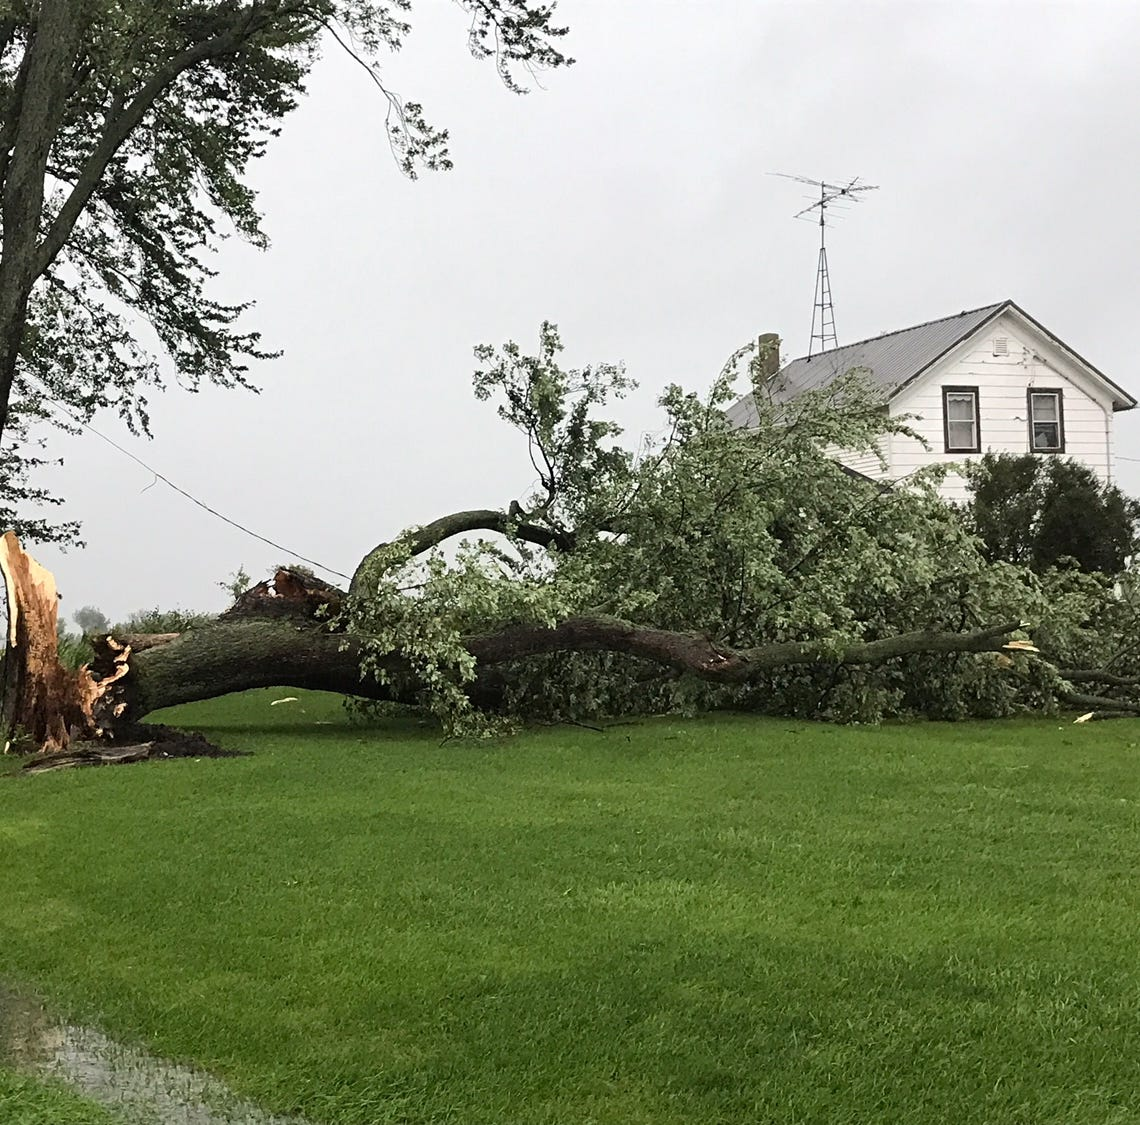 Powerful storm leaves damage, flooding across much of east-central Wisconsin